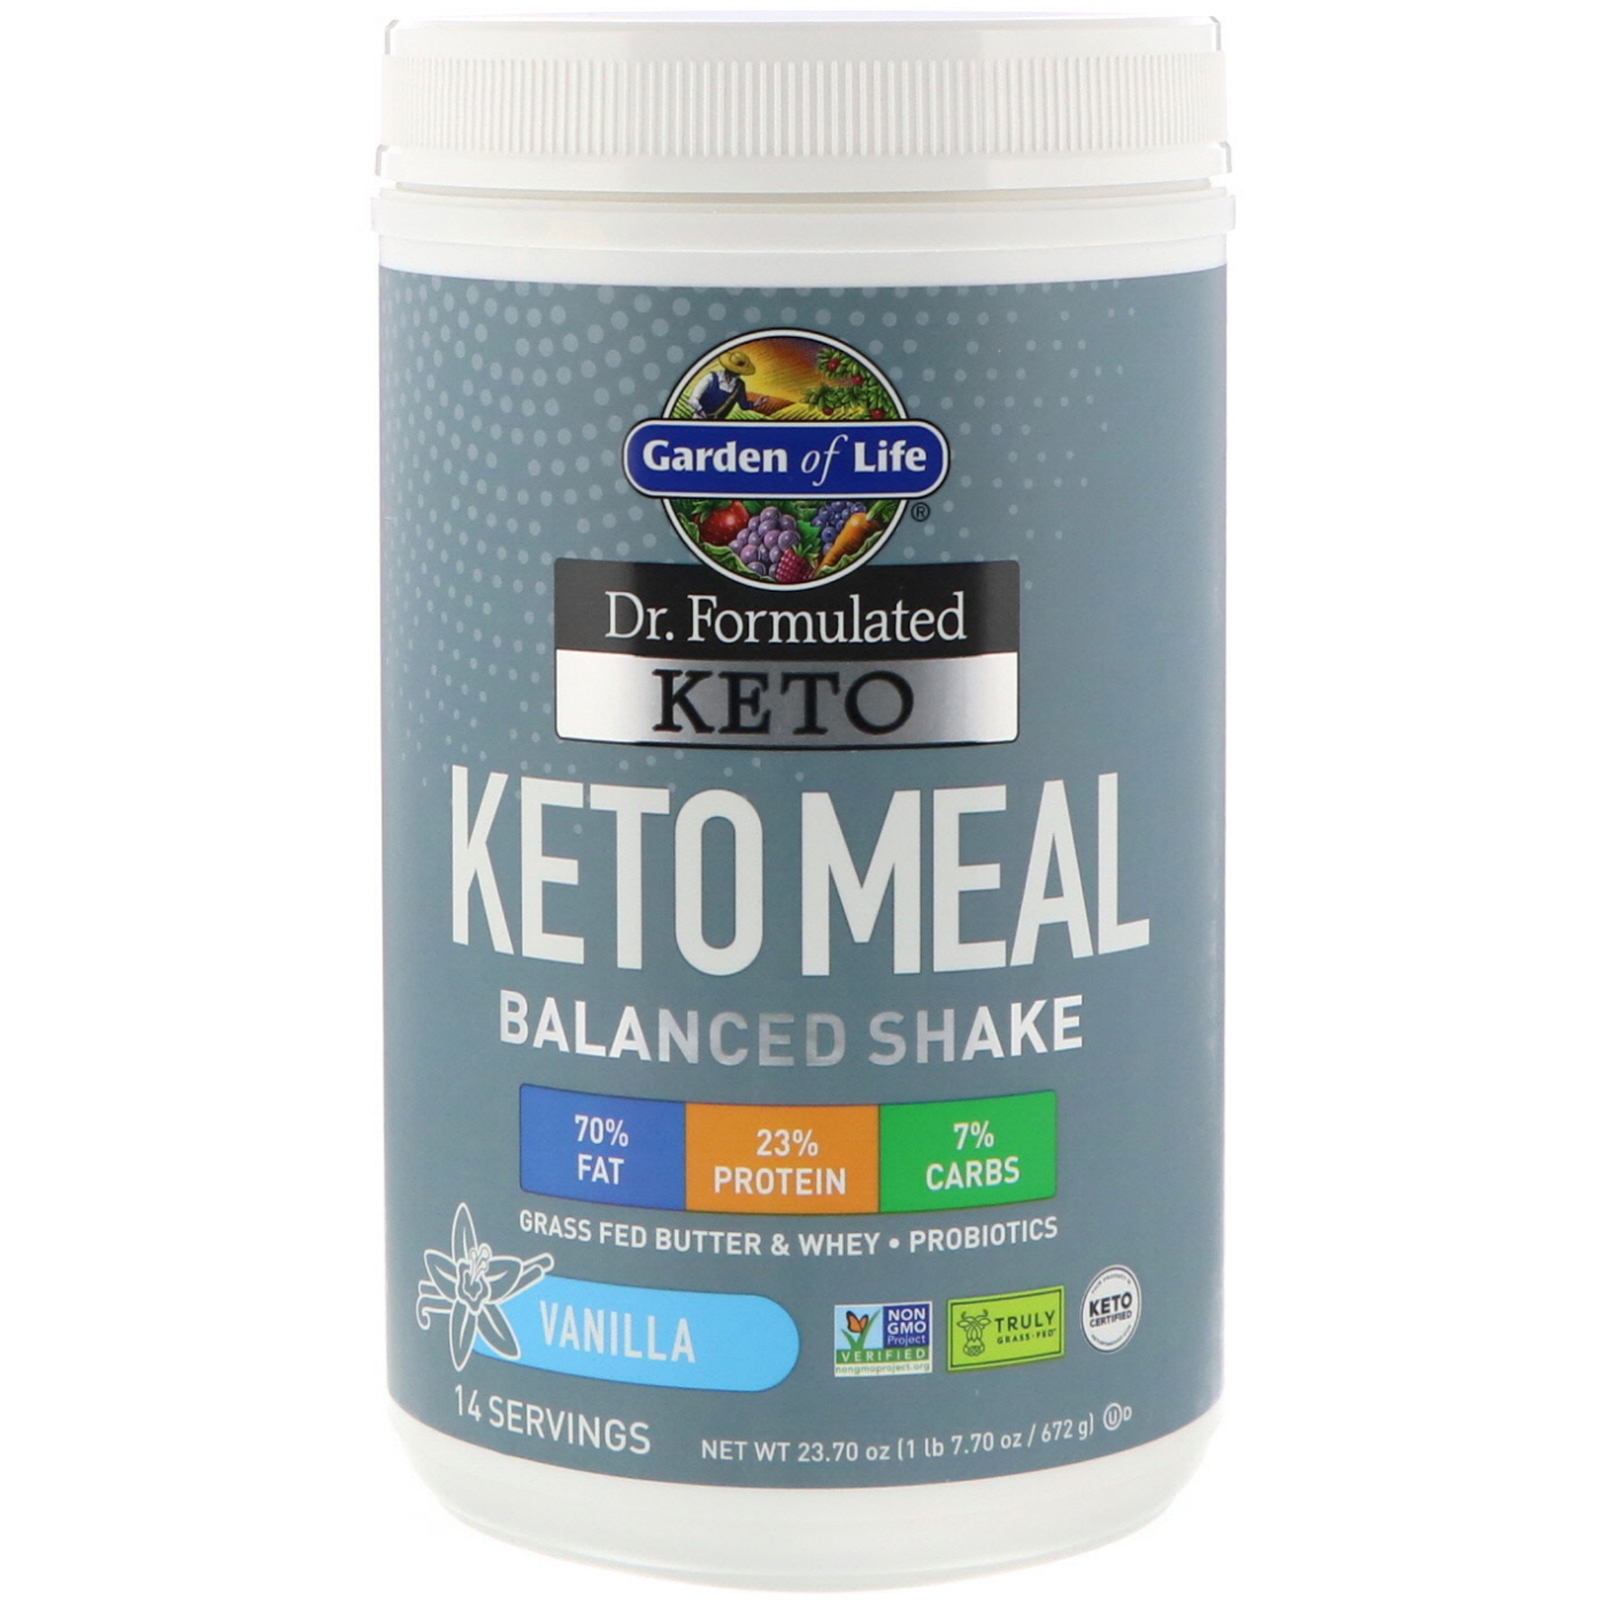 Keto Meal: Garden of Life Dr. Formulated Keto Meal Balanced Shake